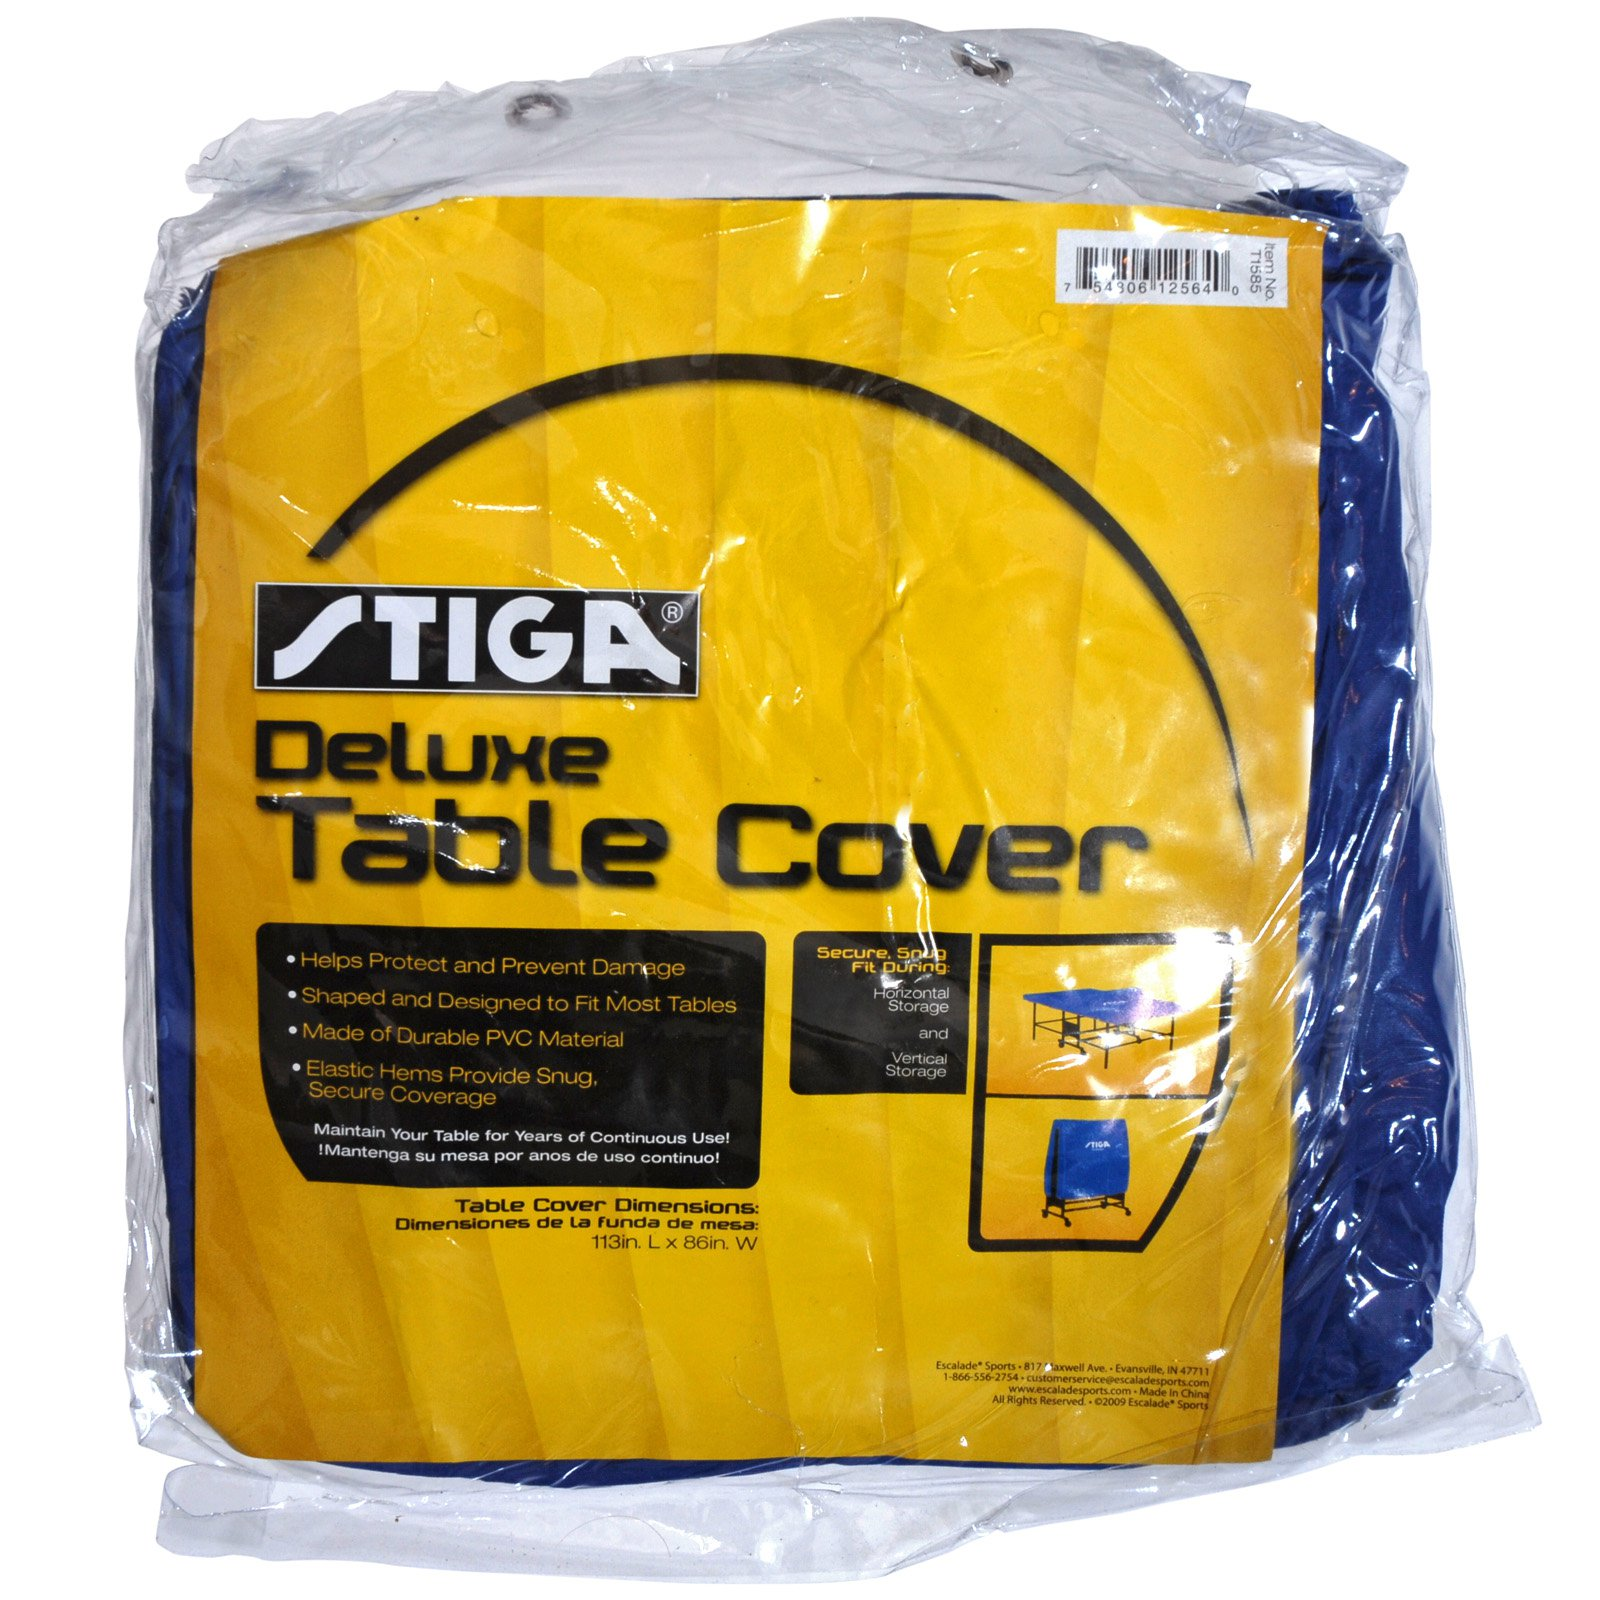 Stiga Deluxe Table Table Cover